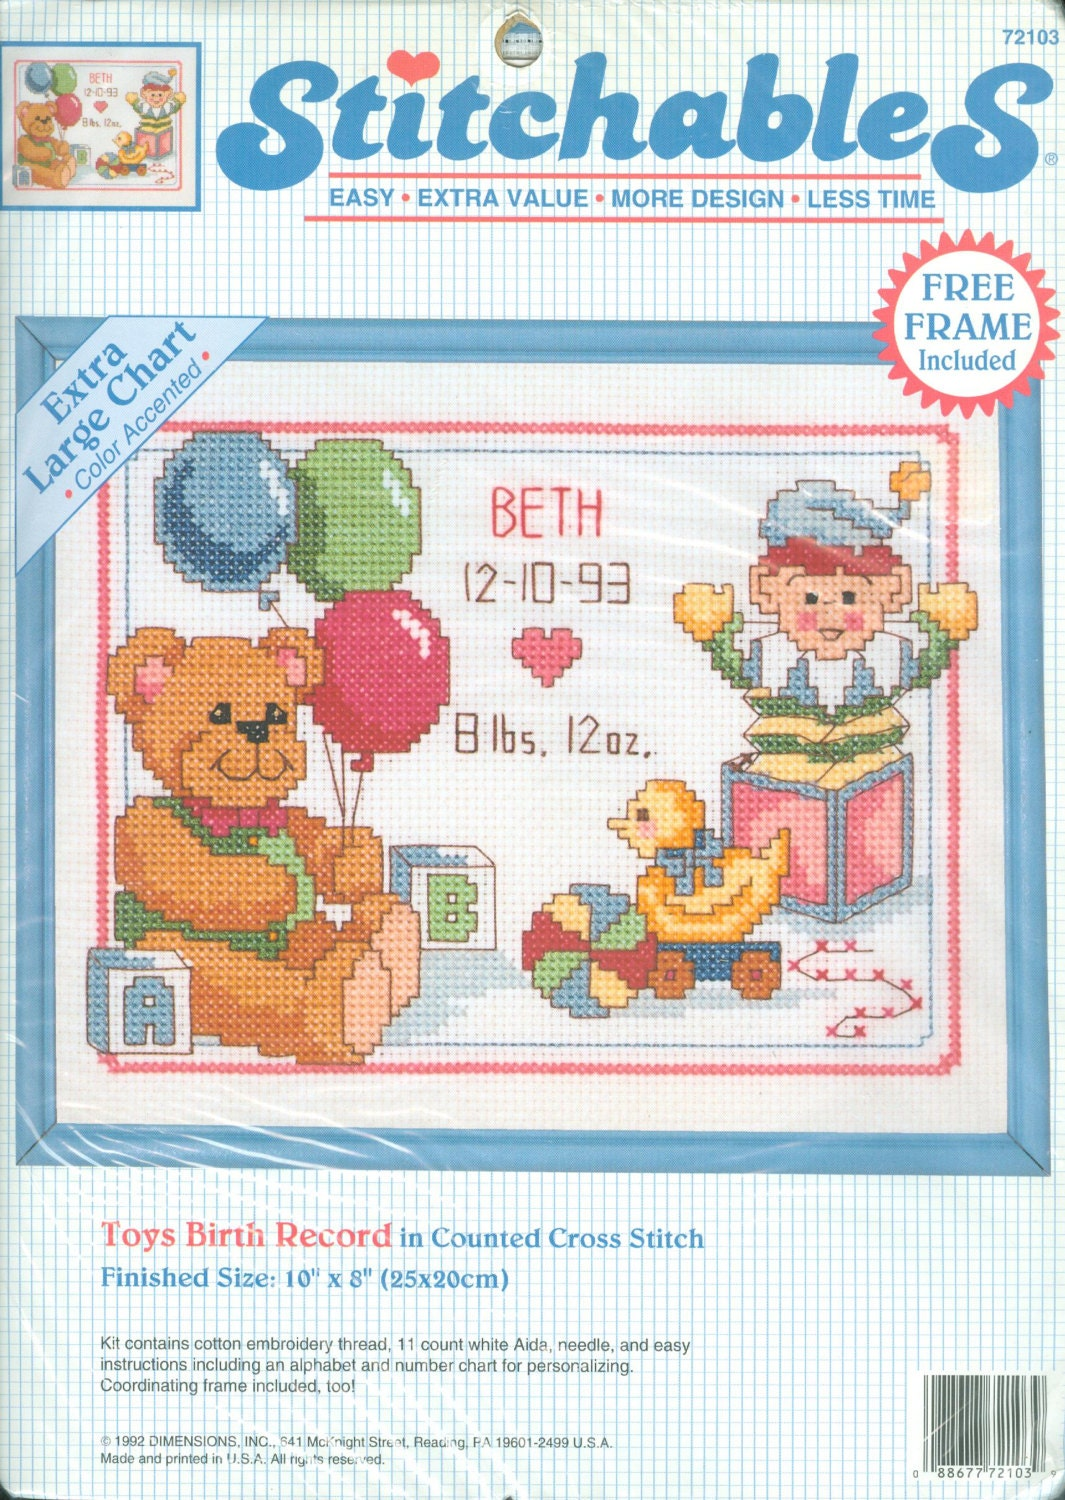 1992 Toys Birth Record Nip Diy Counted Cross Stitch Kit With